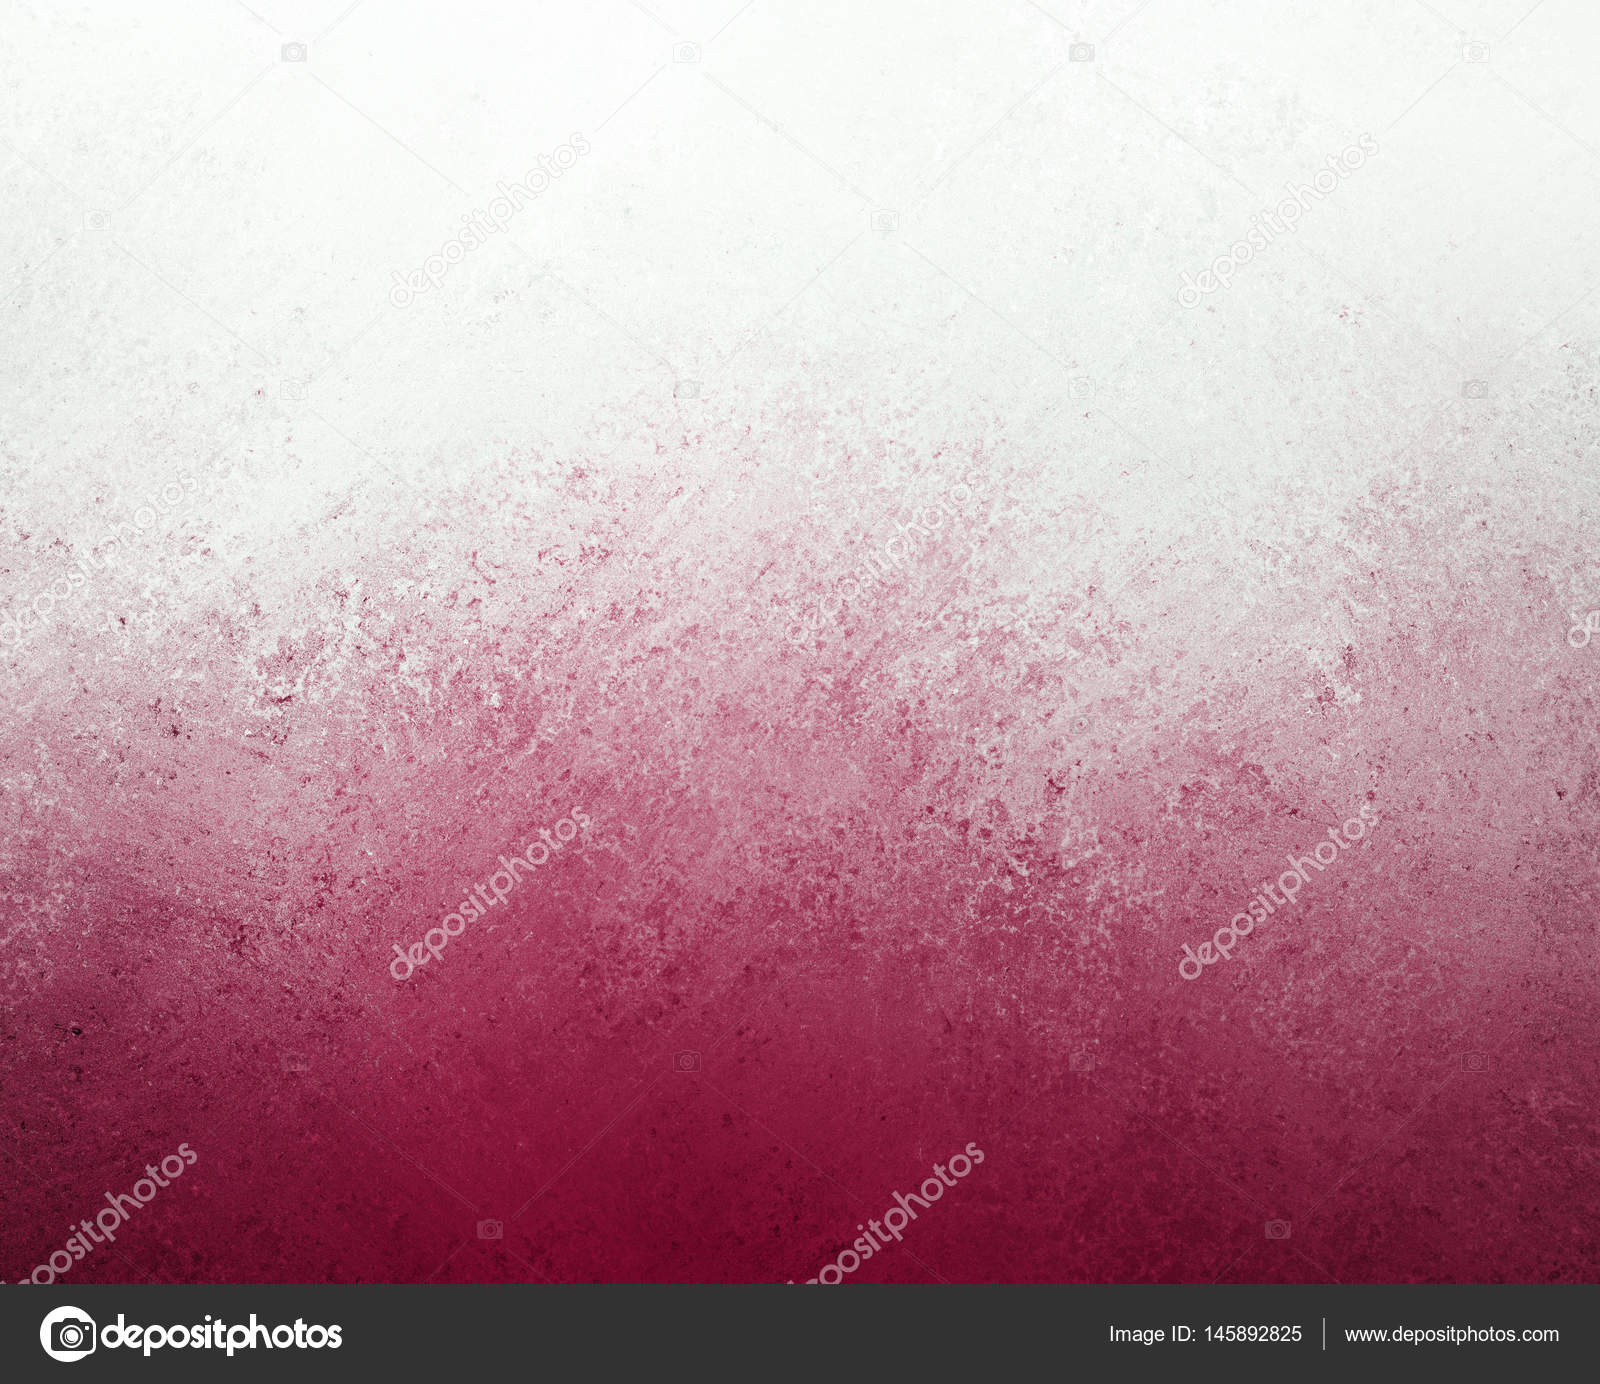 white and pink background design with gradient grunge borders in cloudy burgundy pink painted texture stock photo c apostrophe 145892825 https depositphotos com 145892825 stock photo white and pink background design html